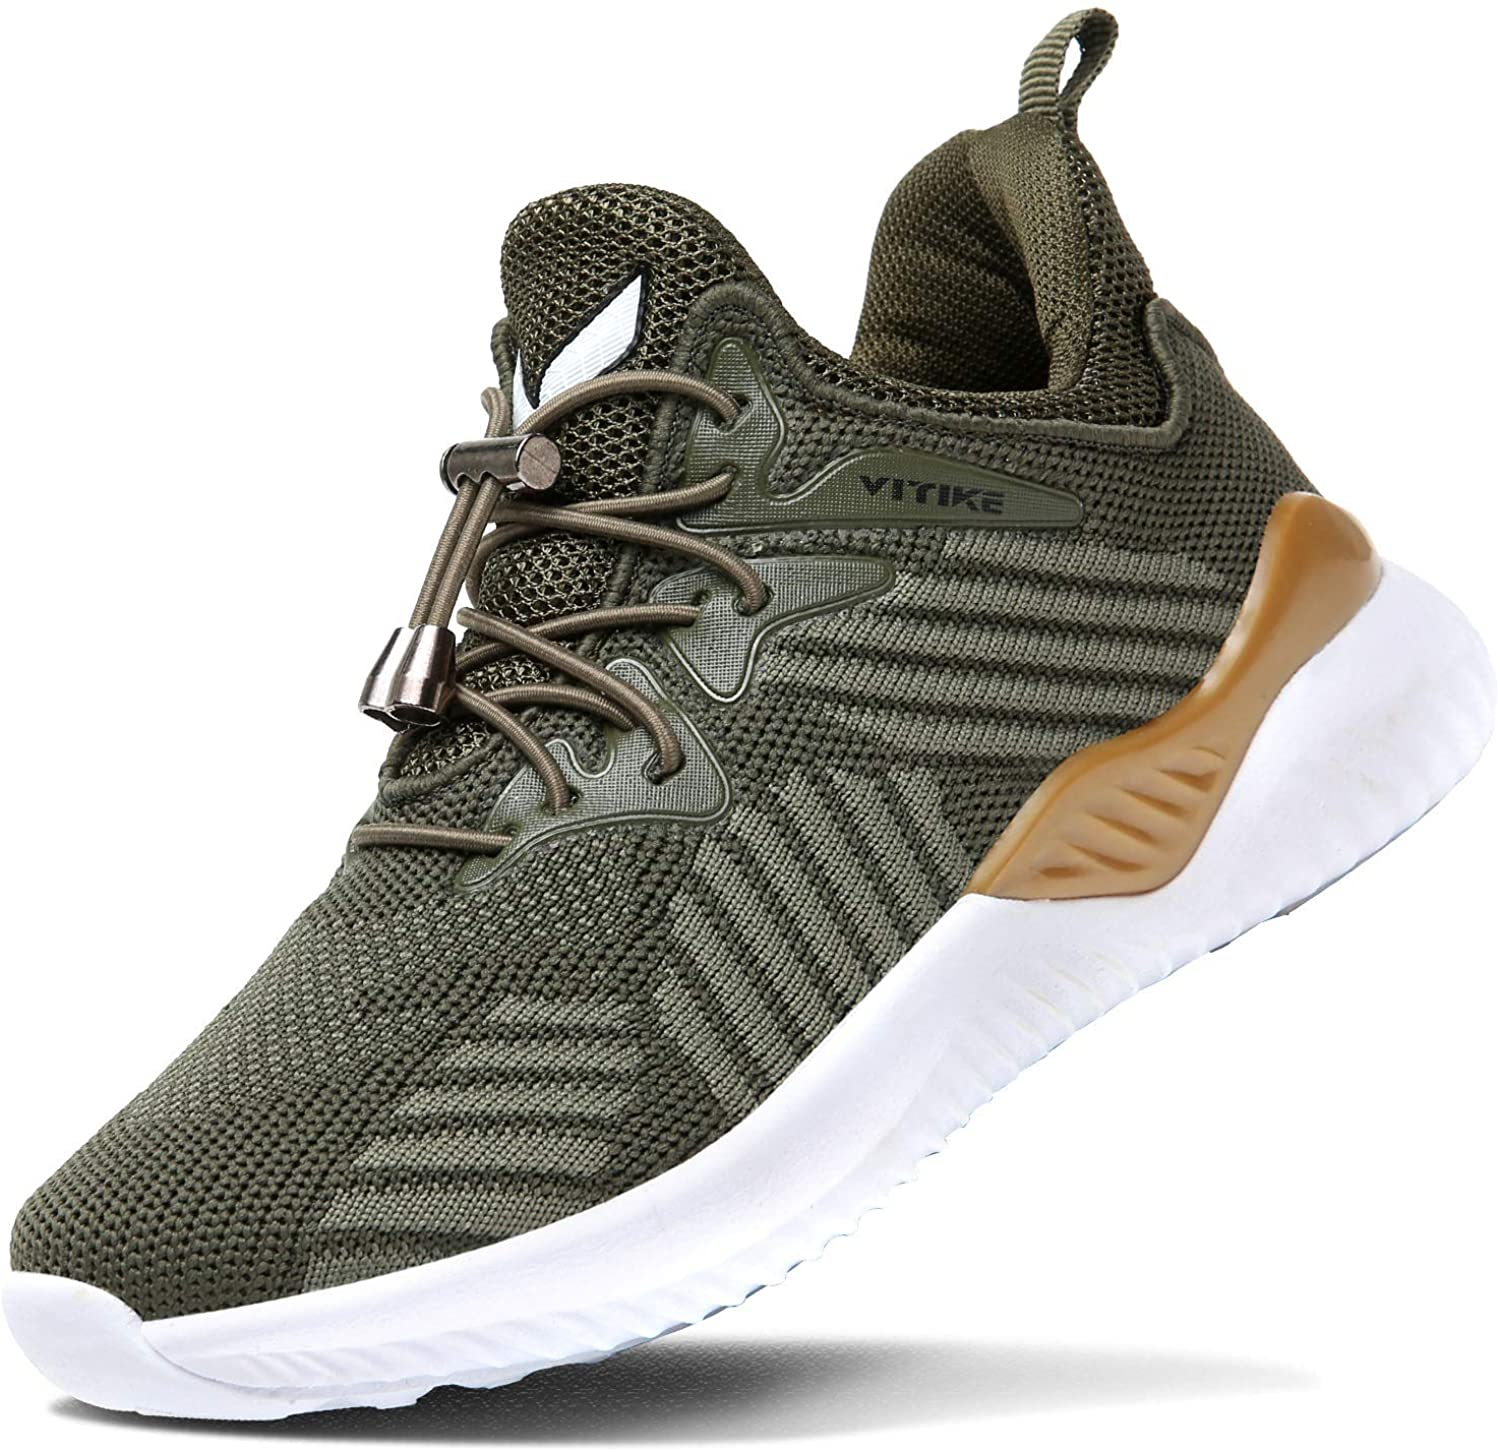 WETIKE Recommended Mesh Slip On Lightweight Running Selling and selling Sneakers